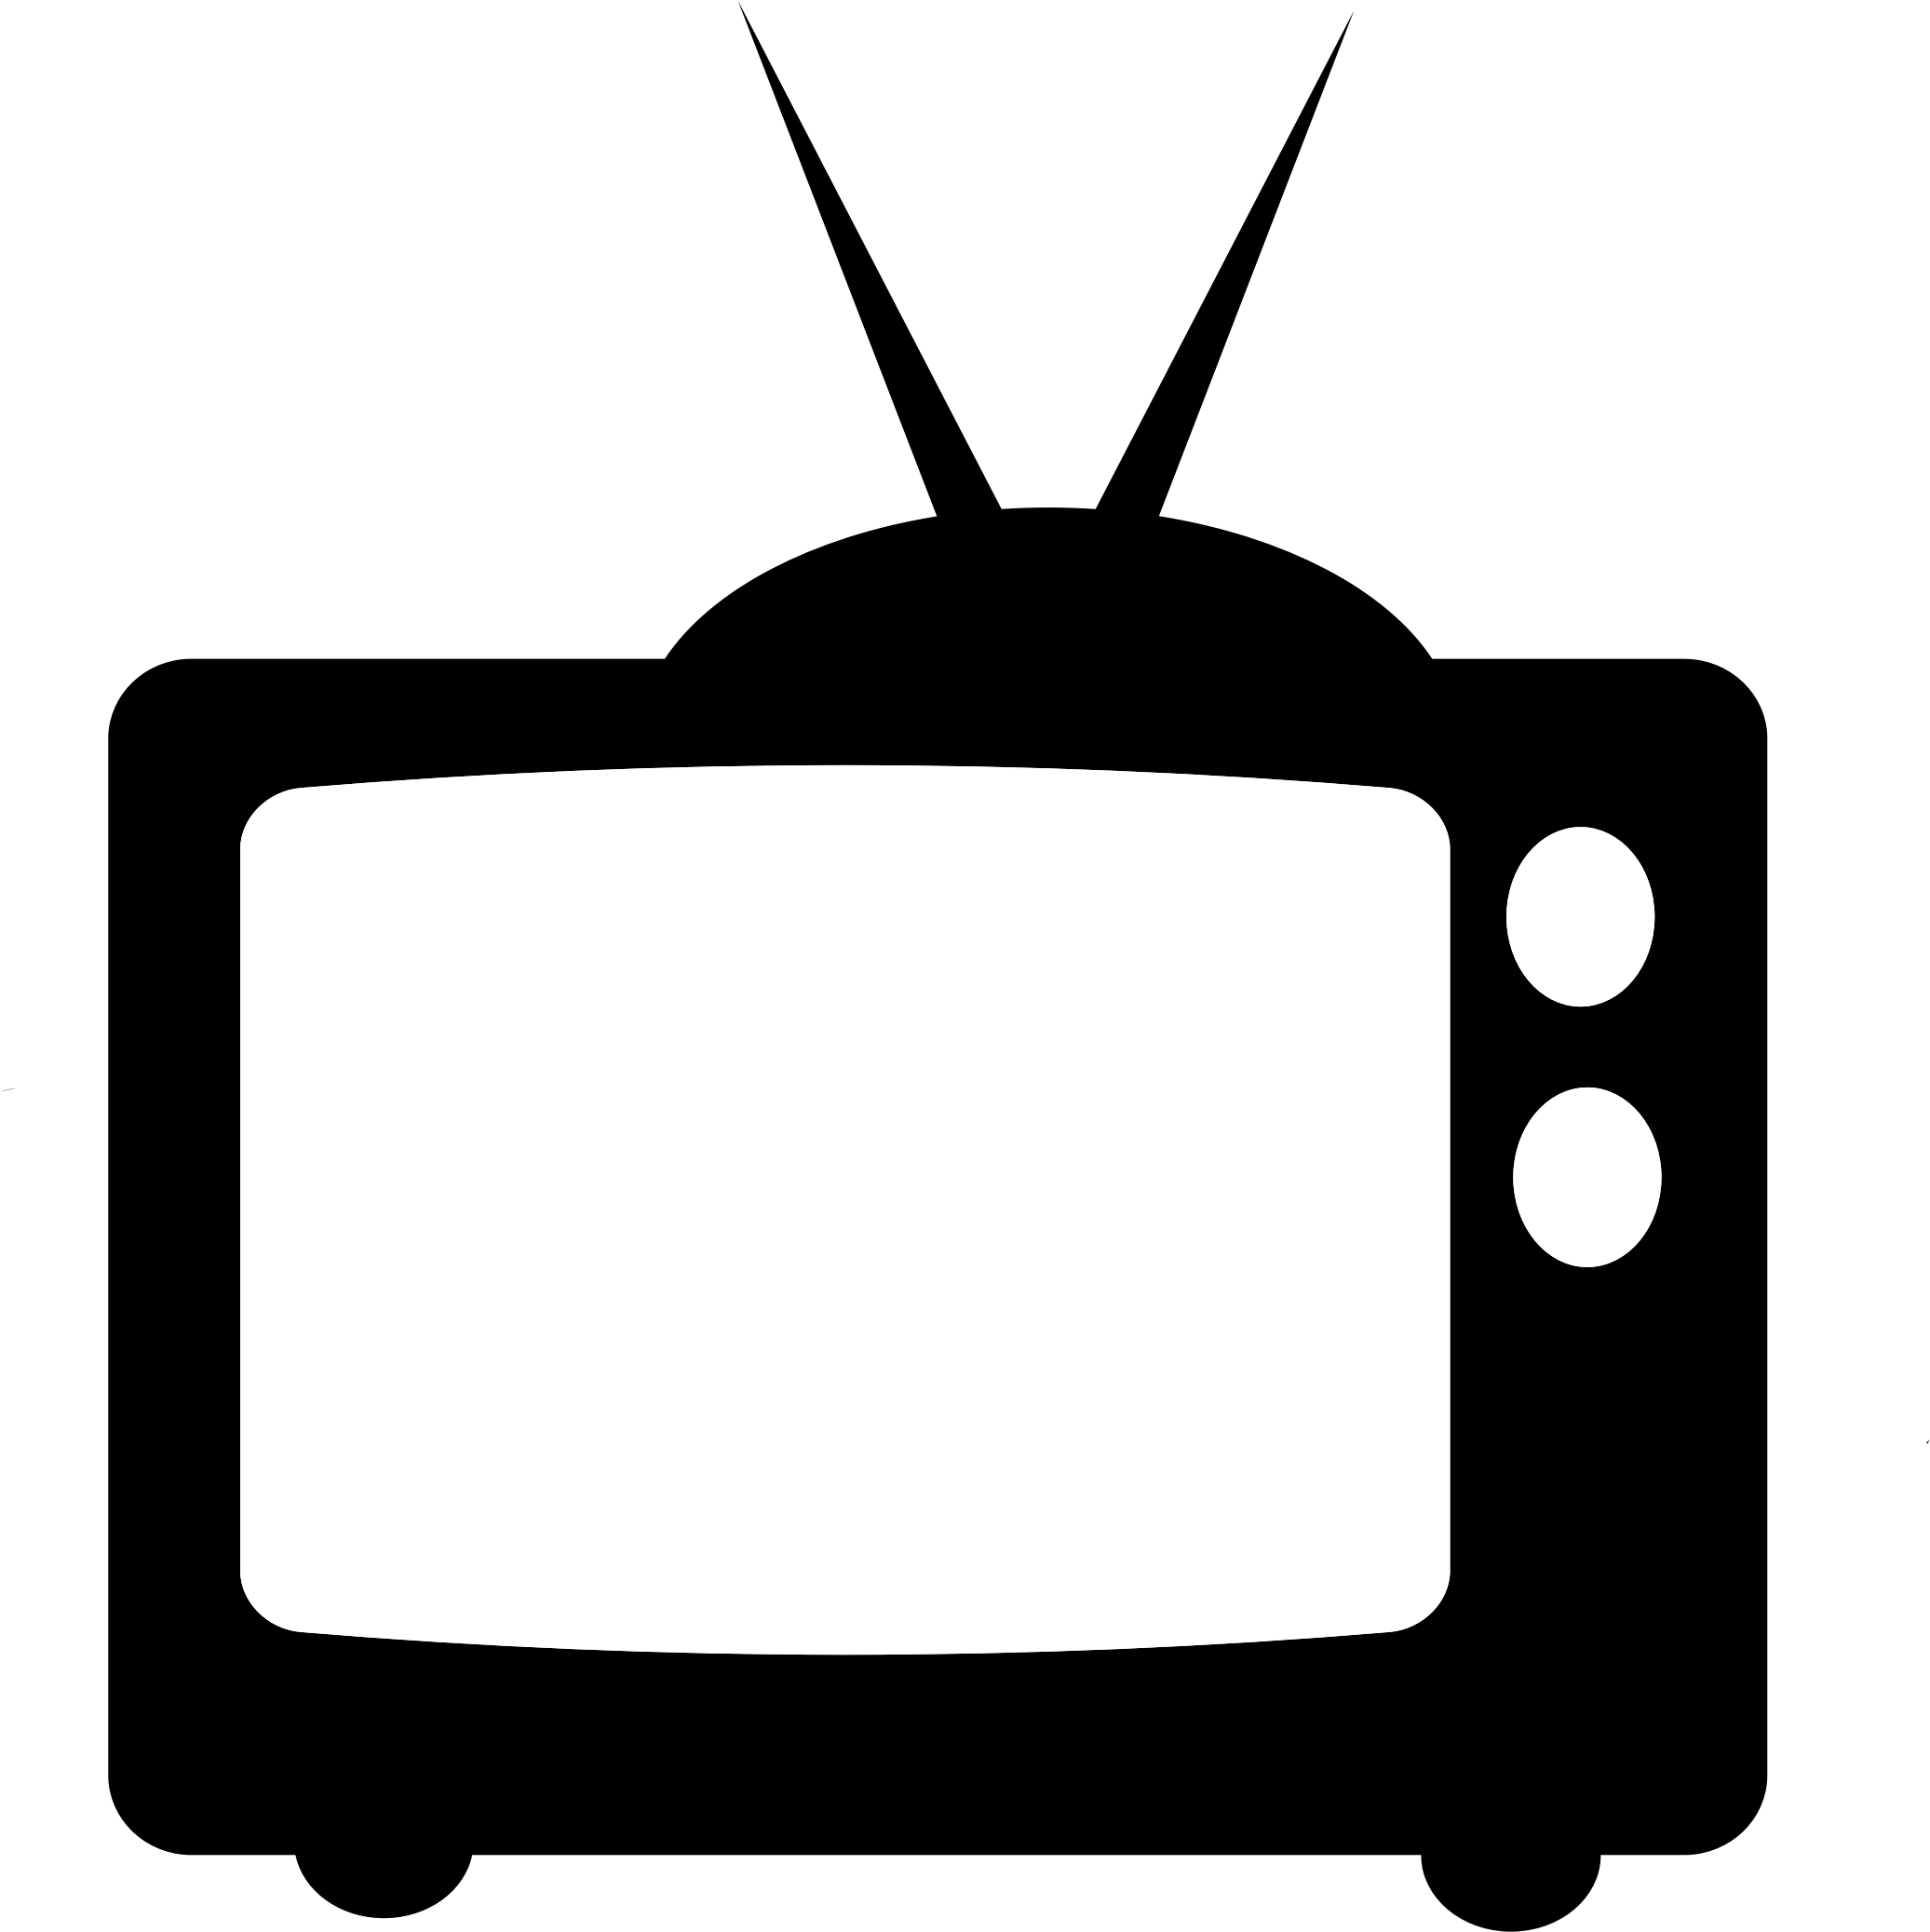 Tvs clipart royalty free stock Free Old TV Cliparts, Download Free Clip Art, Free Clip Art ... royalty free stock